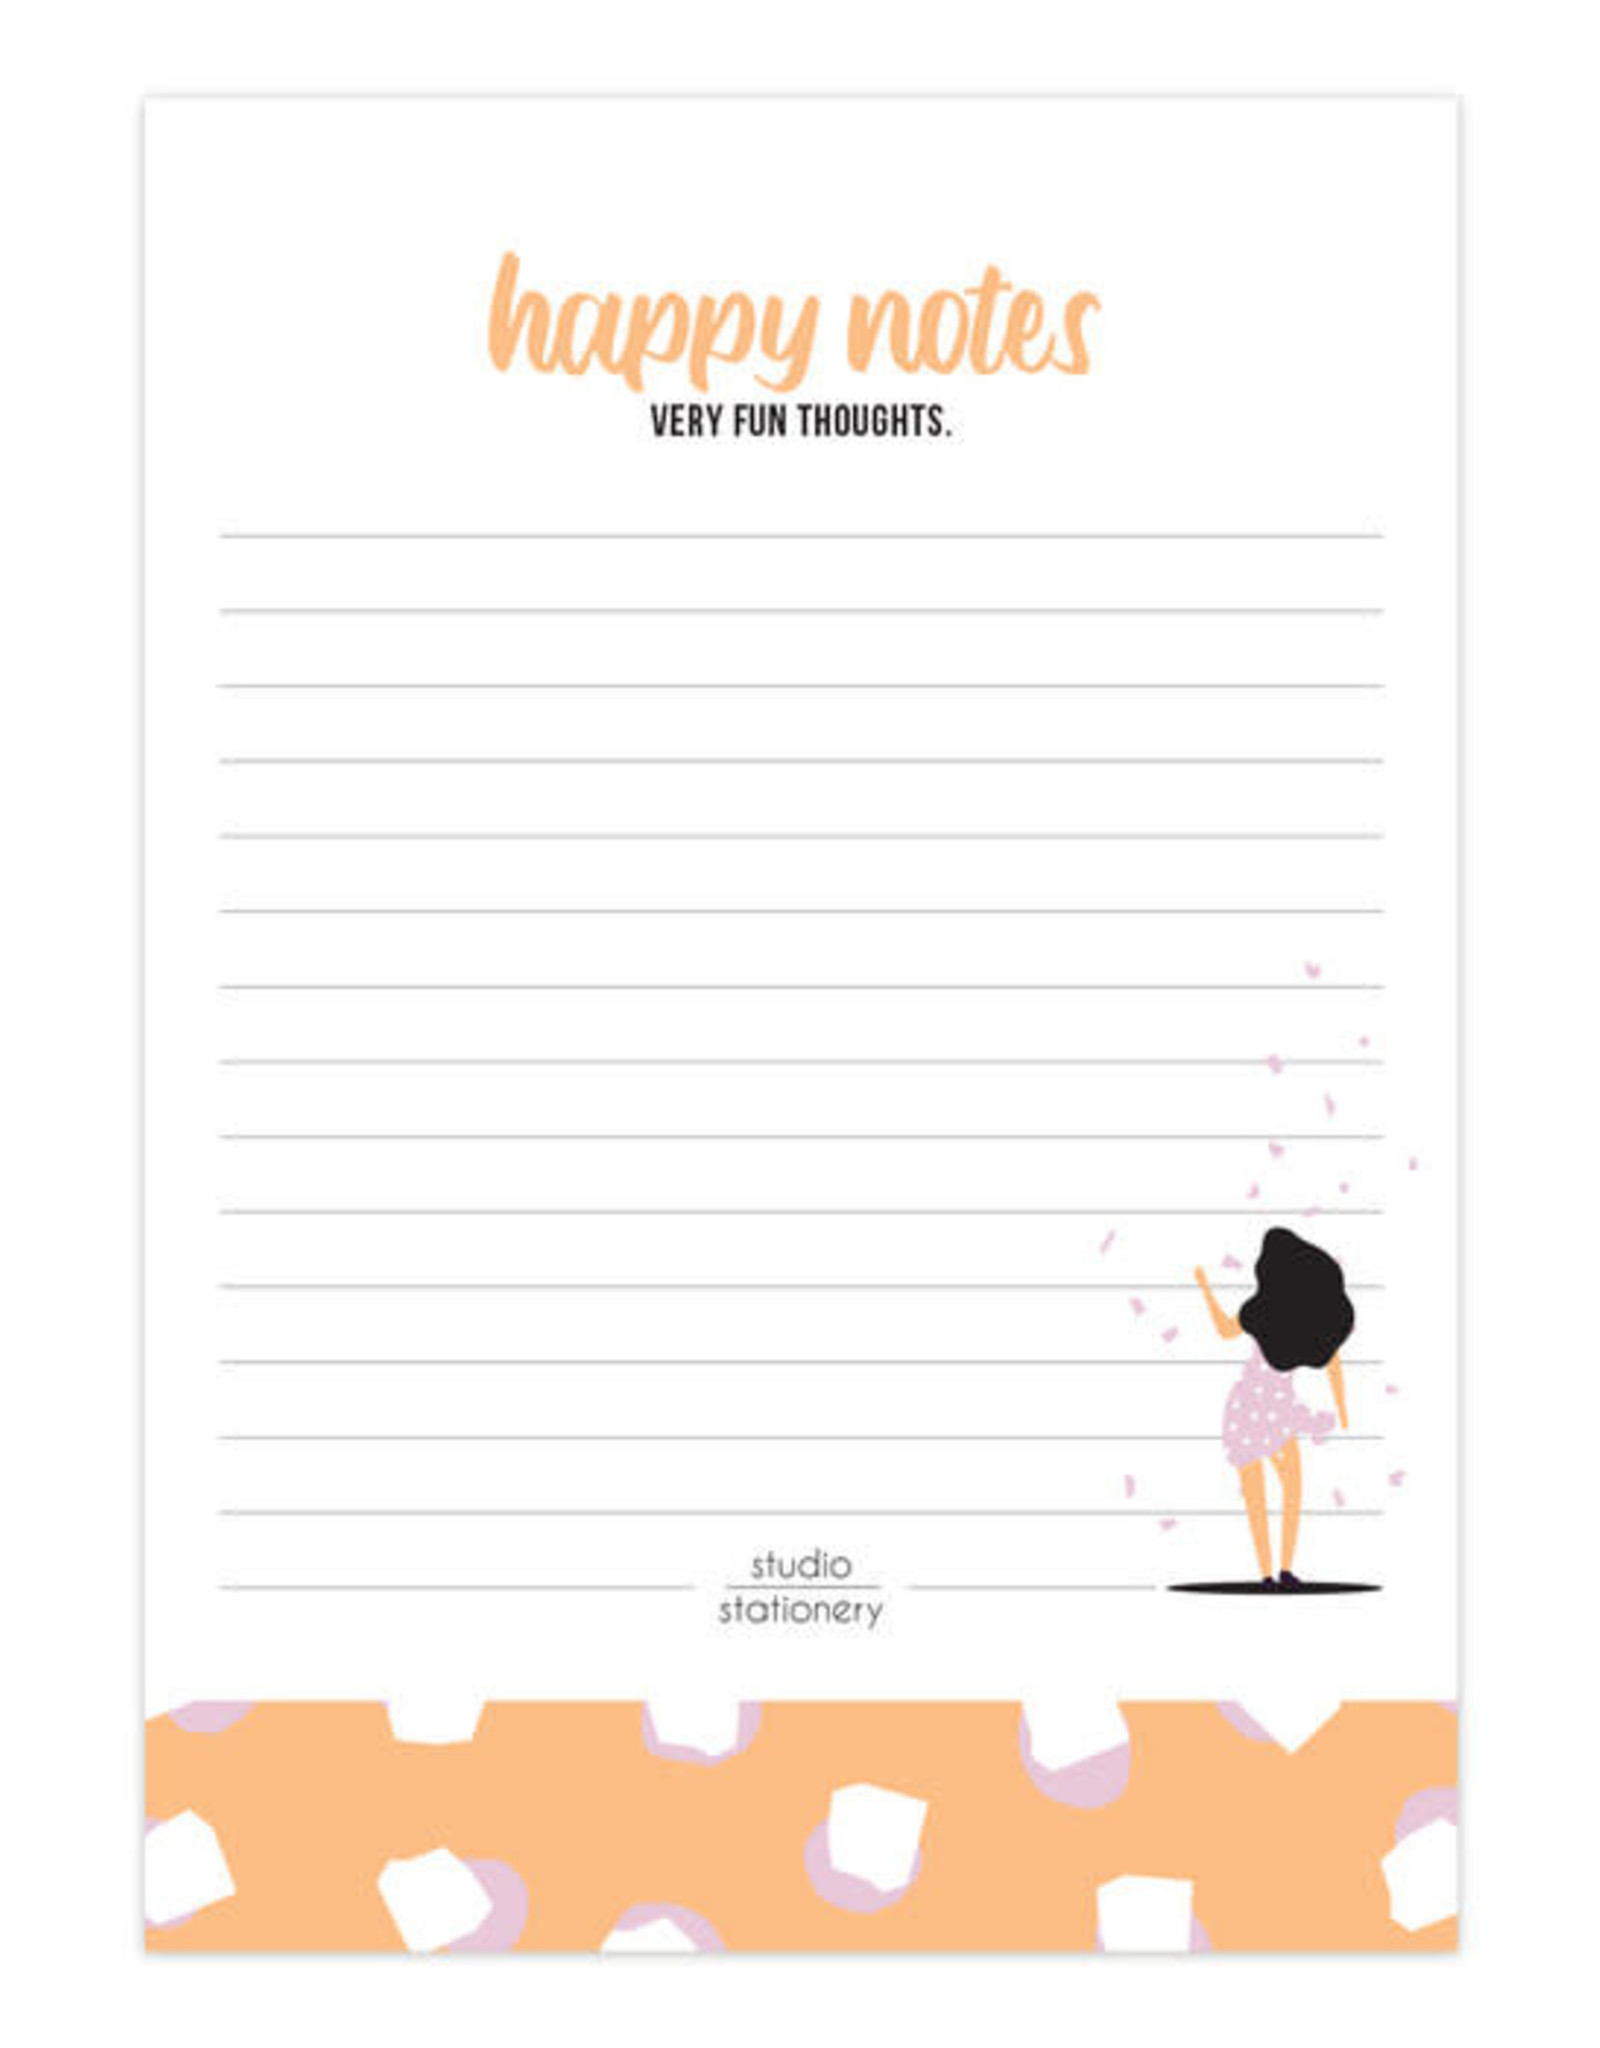 studio stationery Studio stationery A6 Noteblock Happy Notes Very Fun Blush